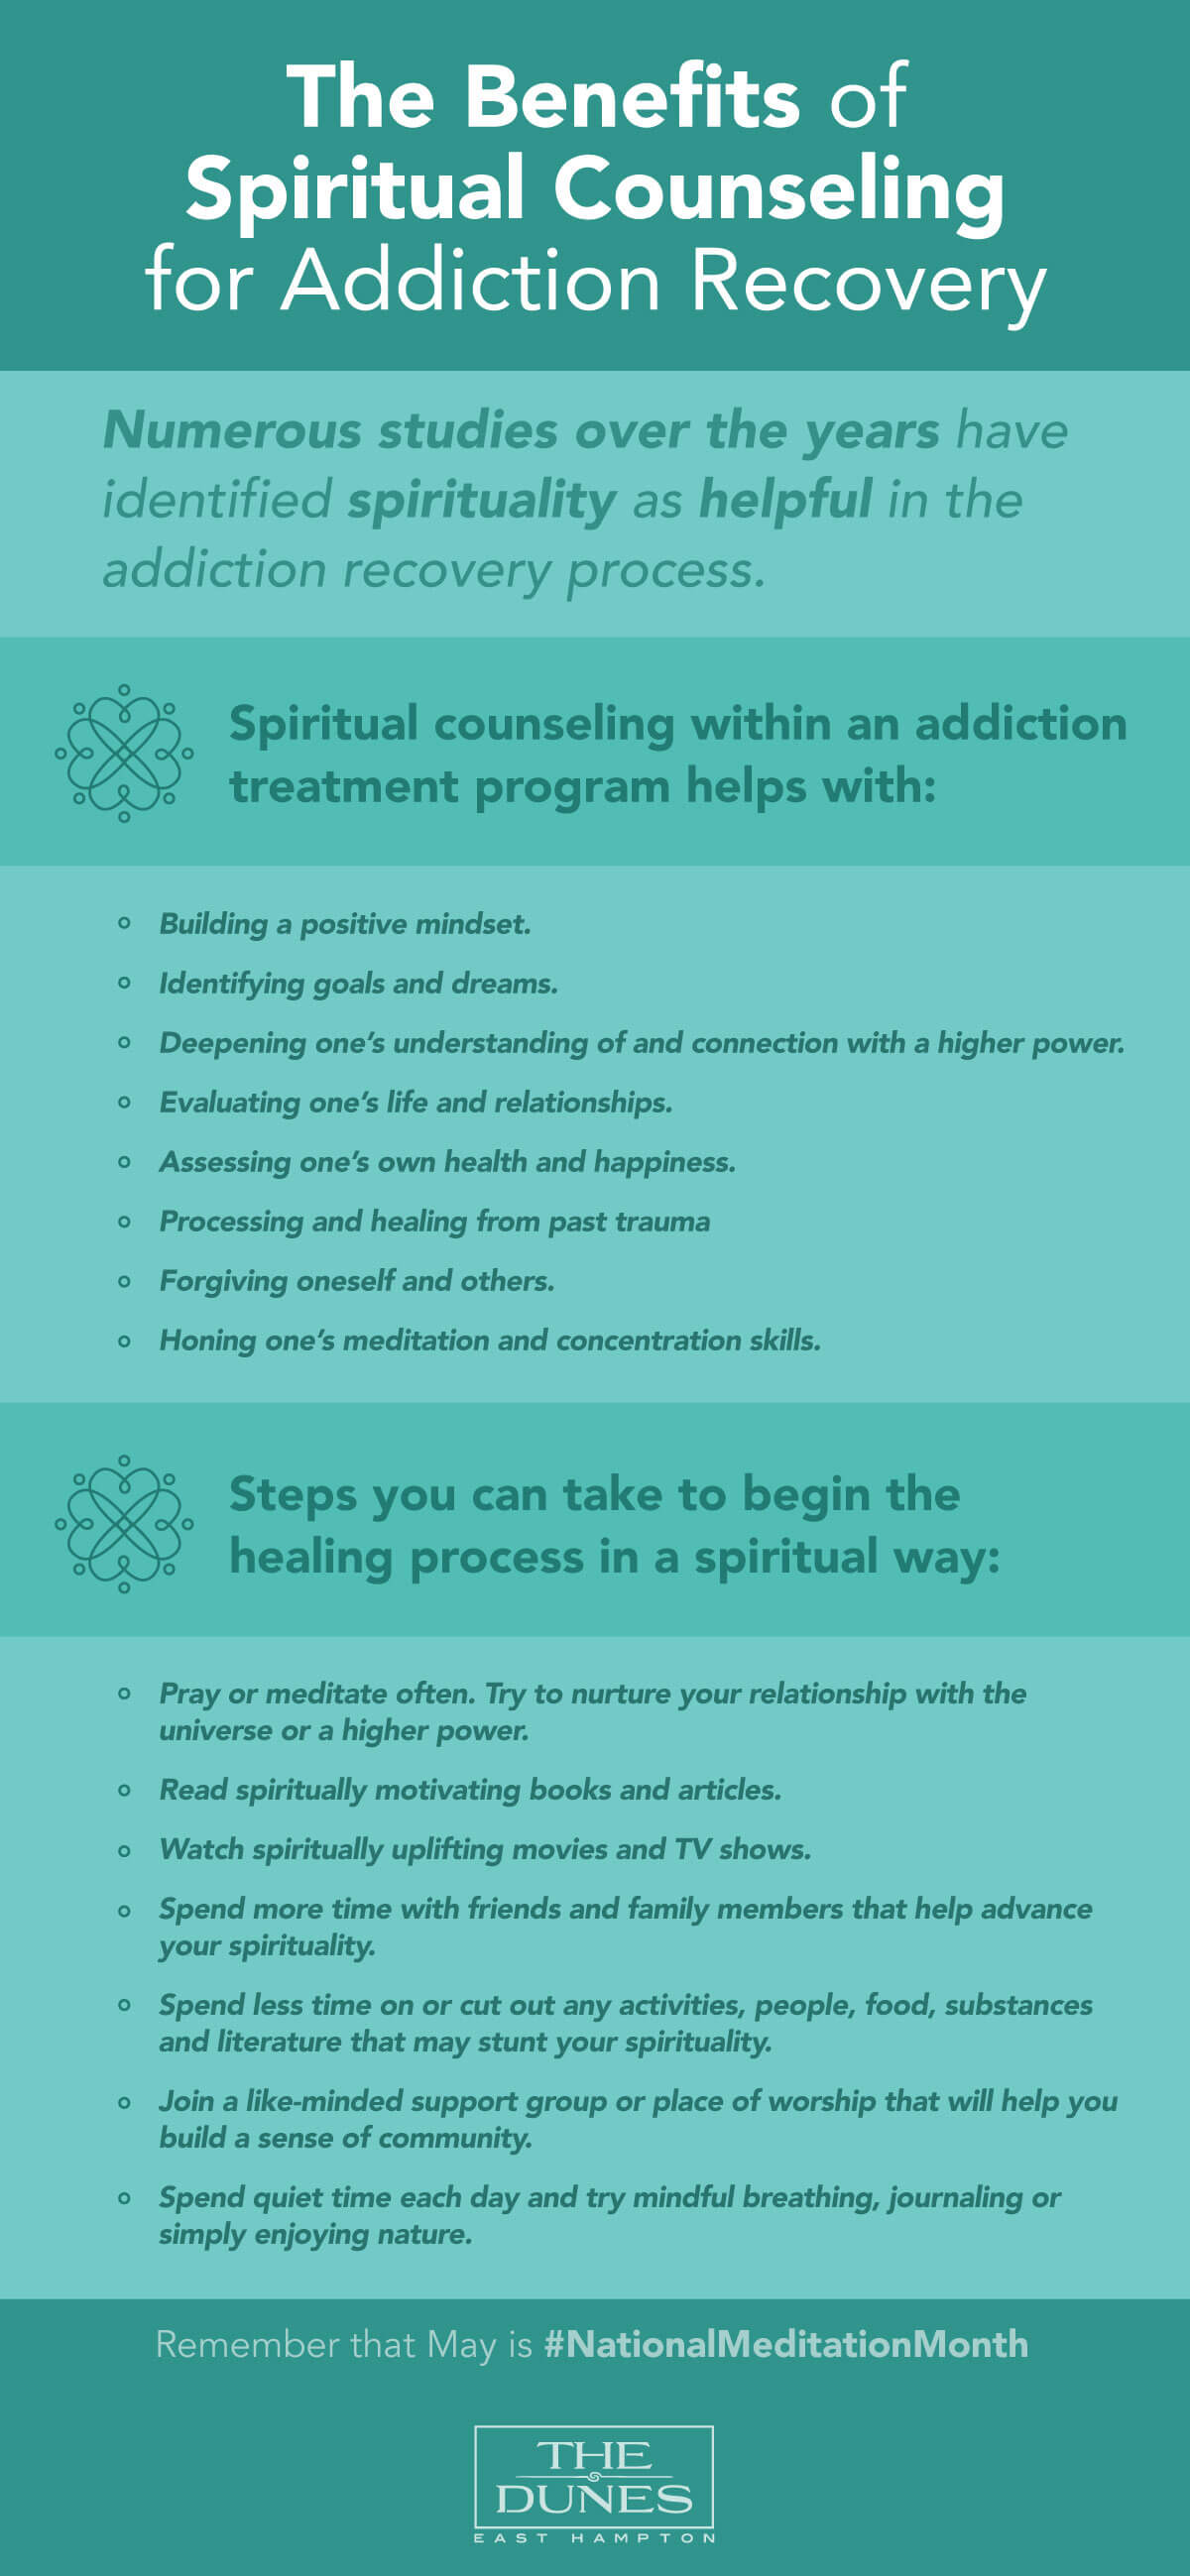 Benefits of Spiritual Counseling - The Dunes East Hampton